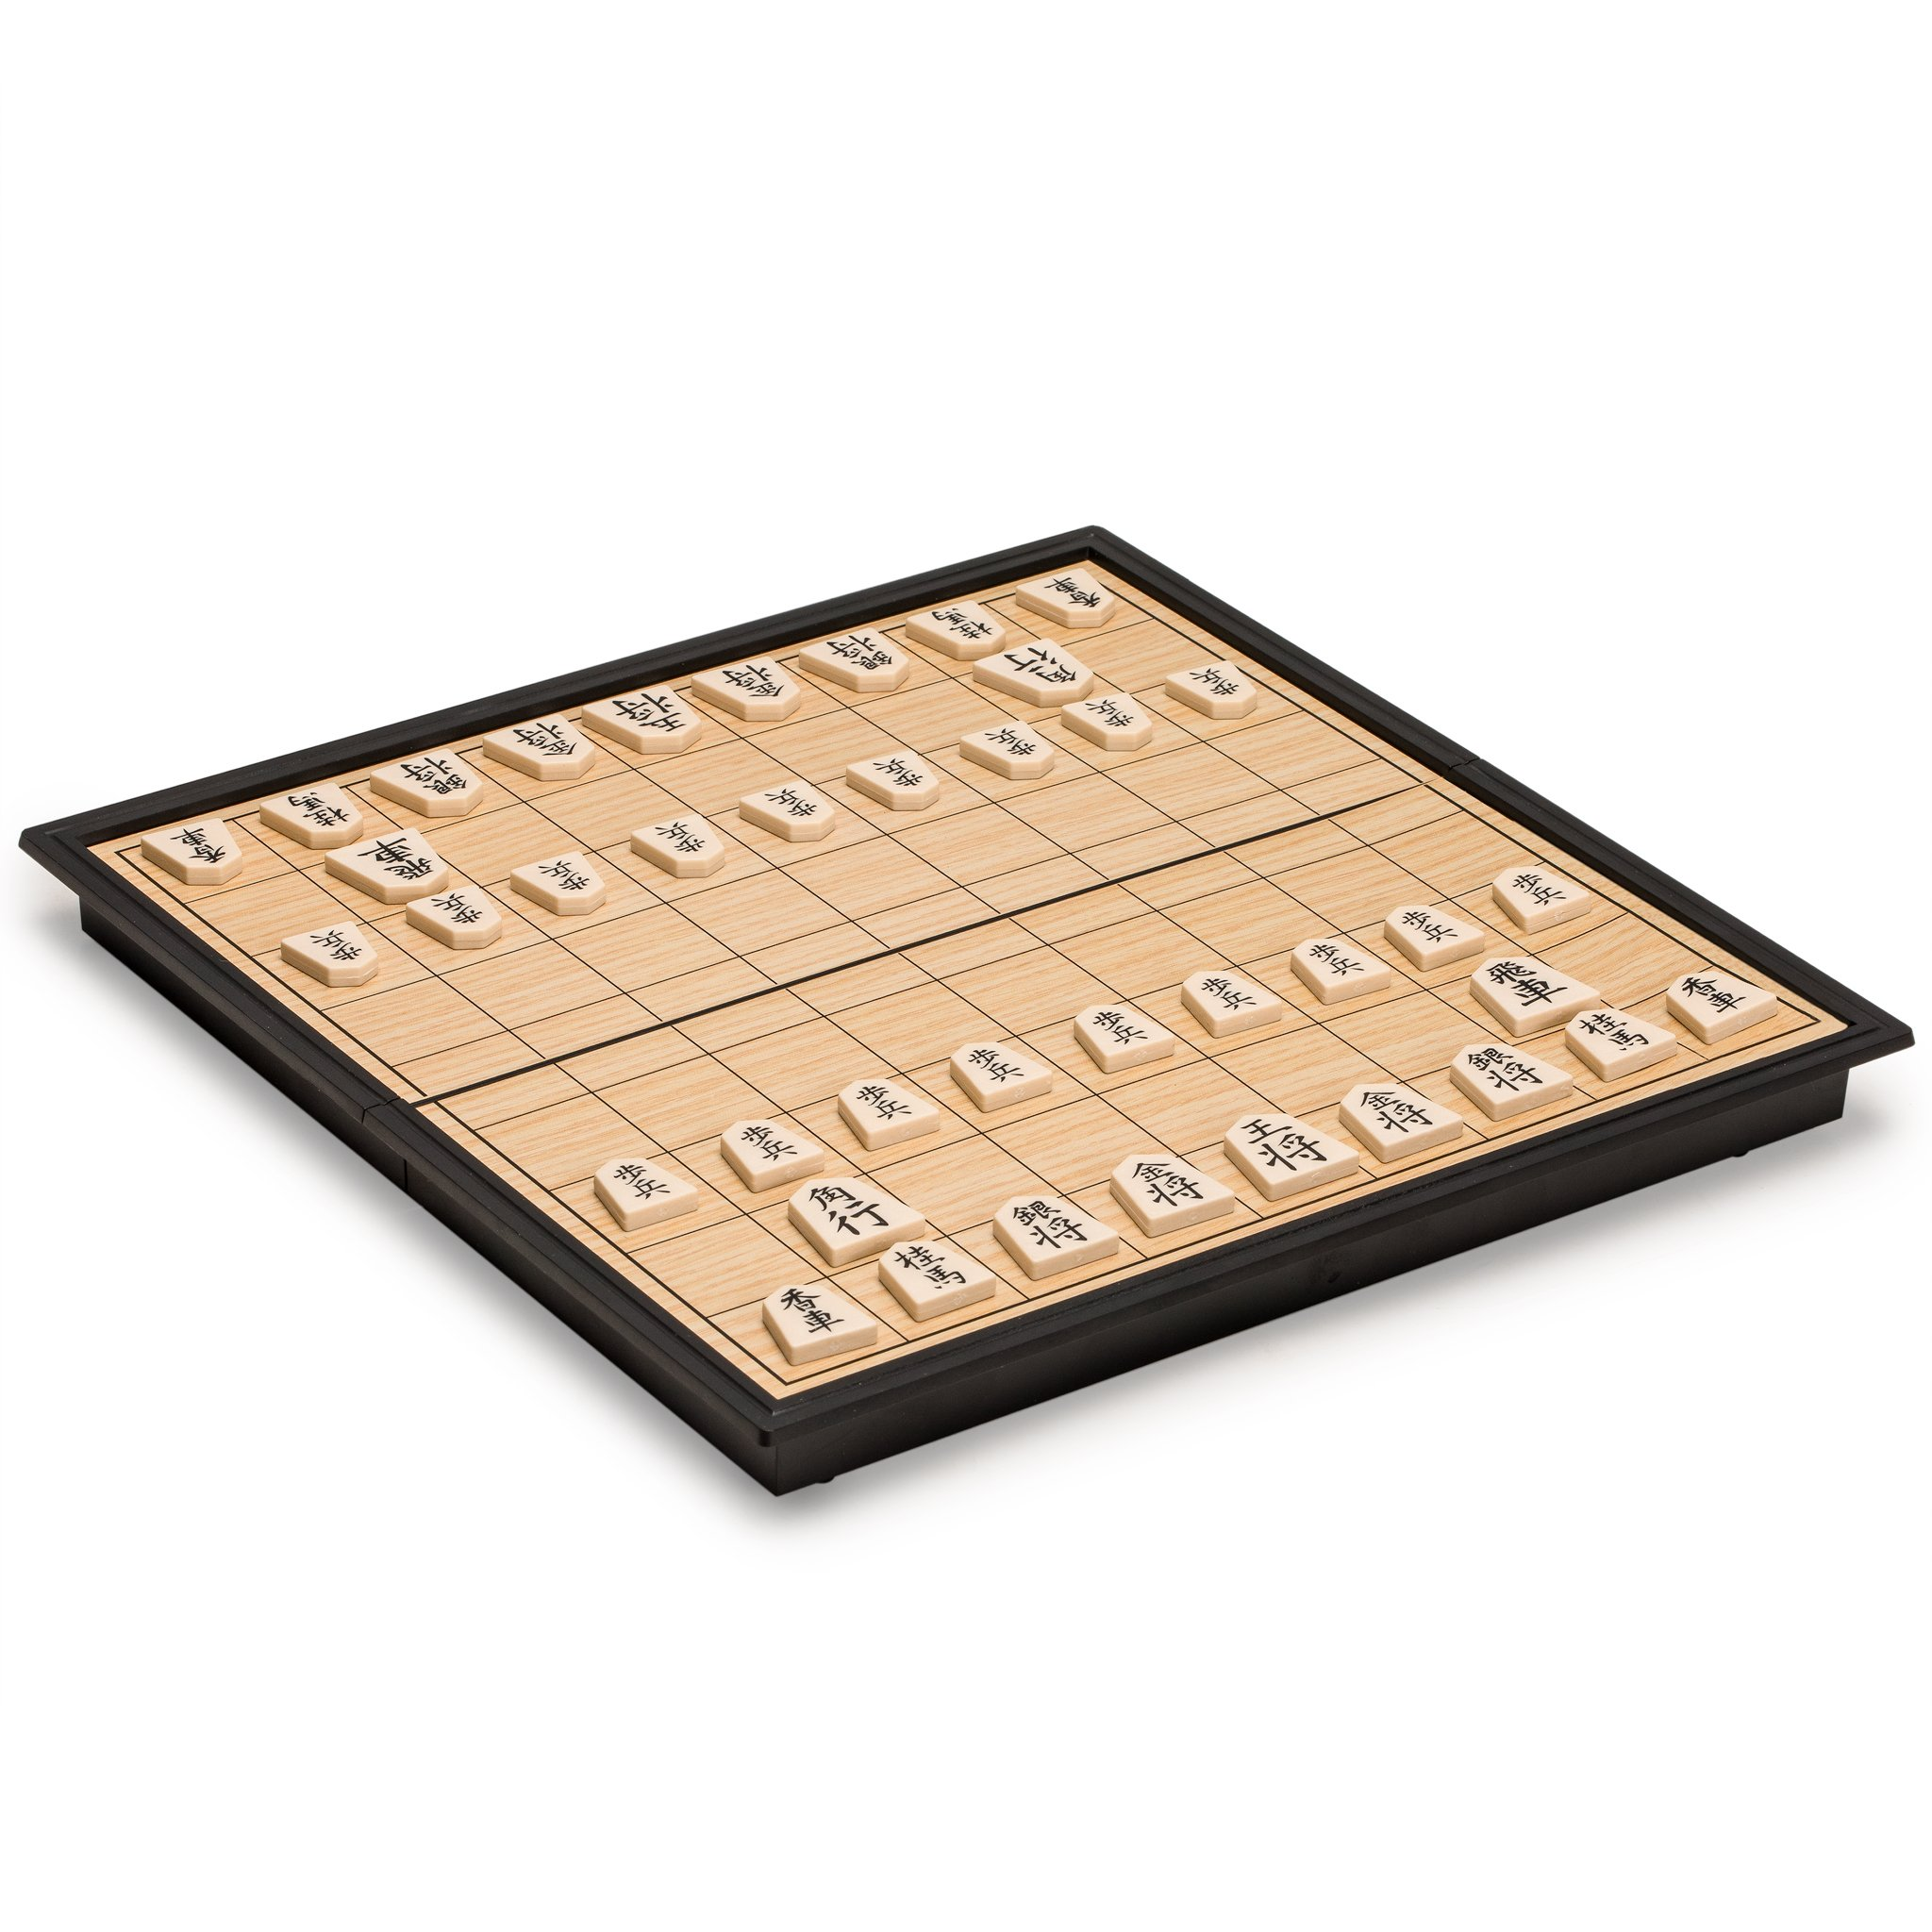 Yellow Mountain Imports Shogi Travel Game Set with Magnetic 9.75 Inch Board and Game Pieces